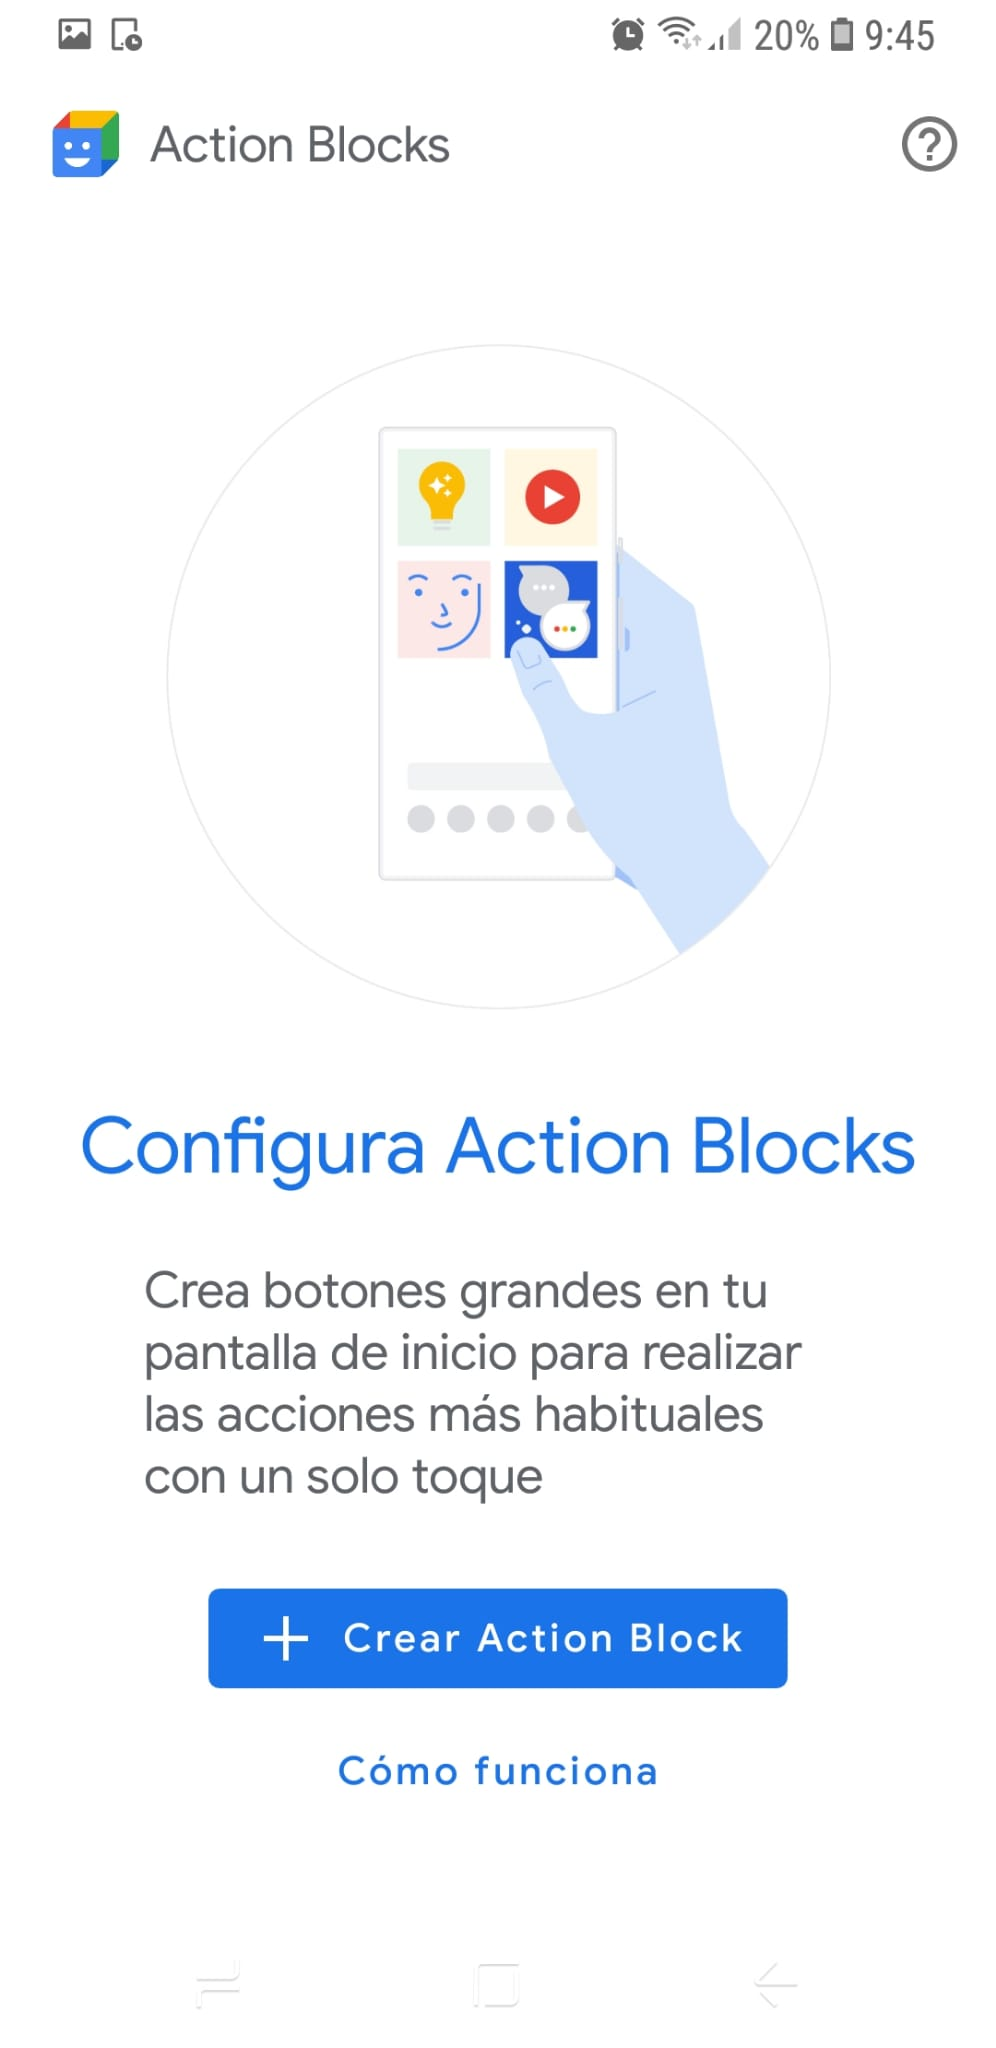 Pantalla configura Action Blocks